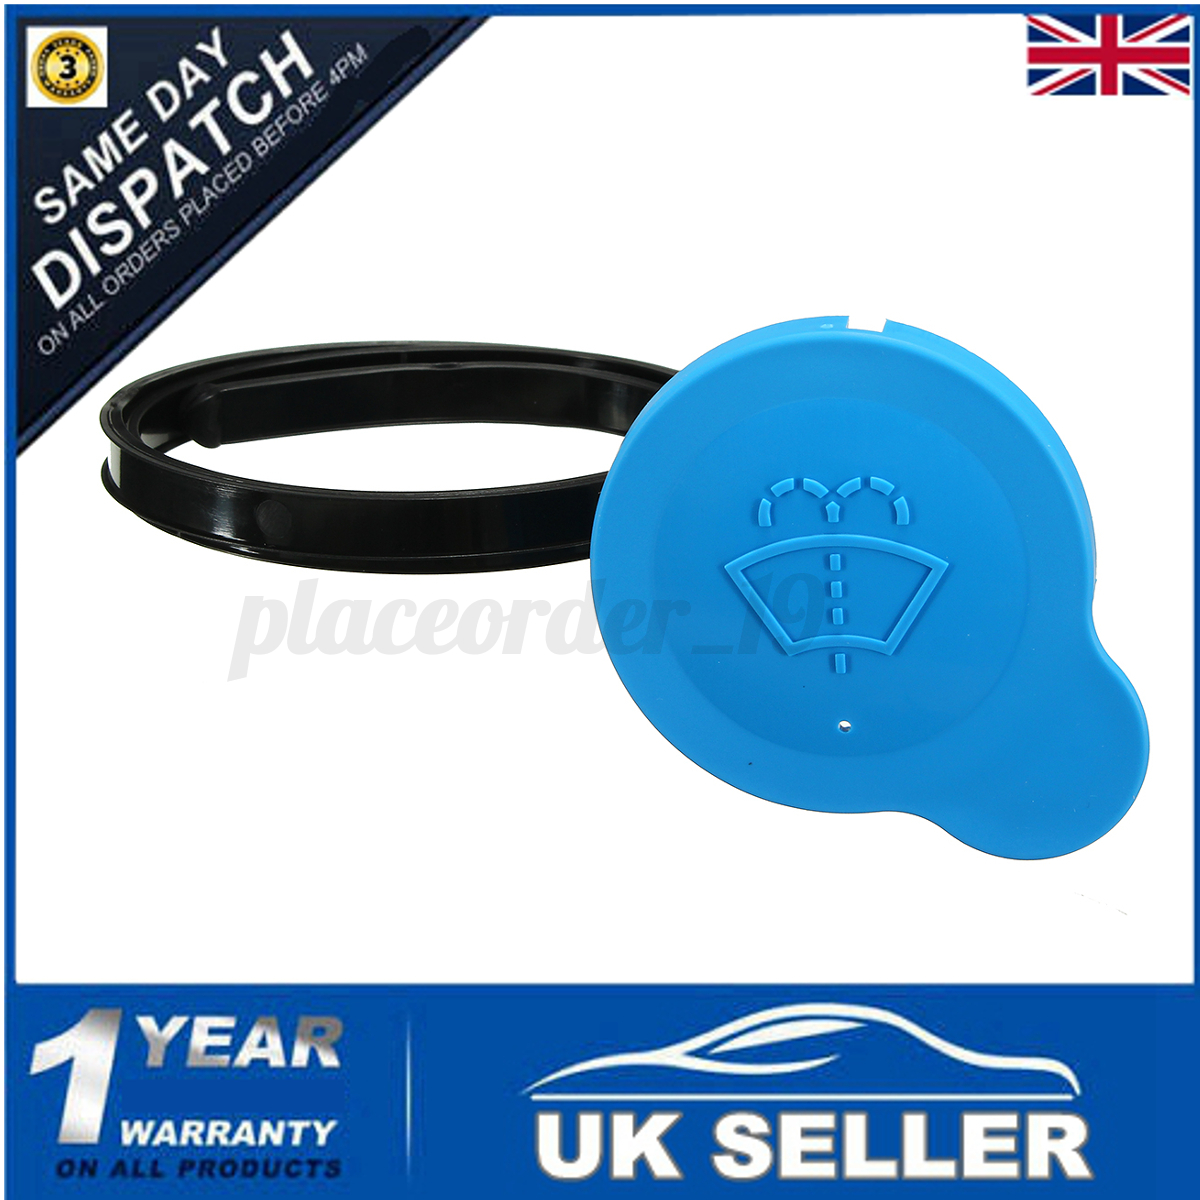 High Quality Car Windscreen Reservoir Washer Bottle Cap Blue for Nissan Qashqai Replacement for Broken or Missing One